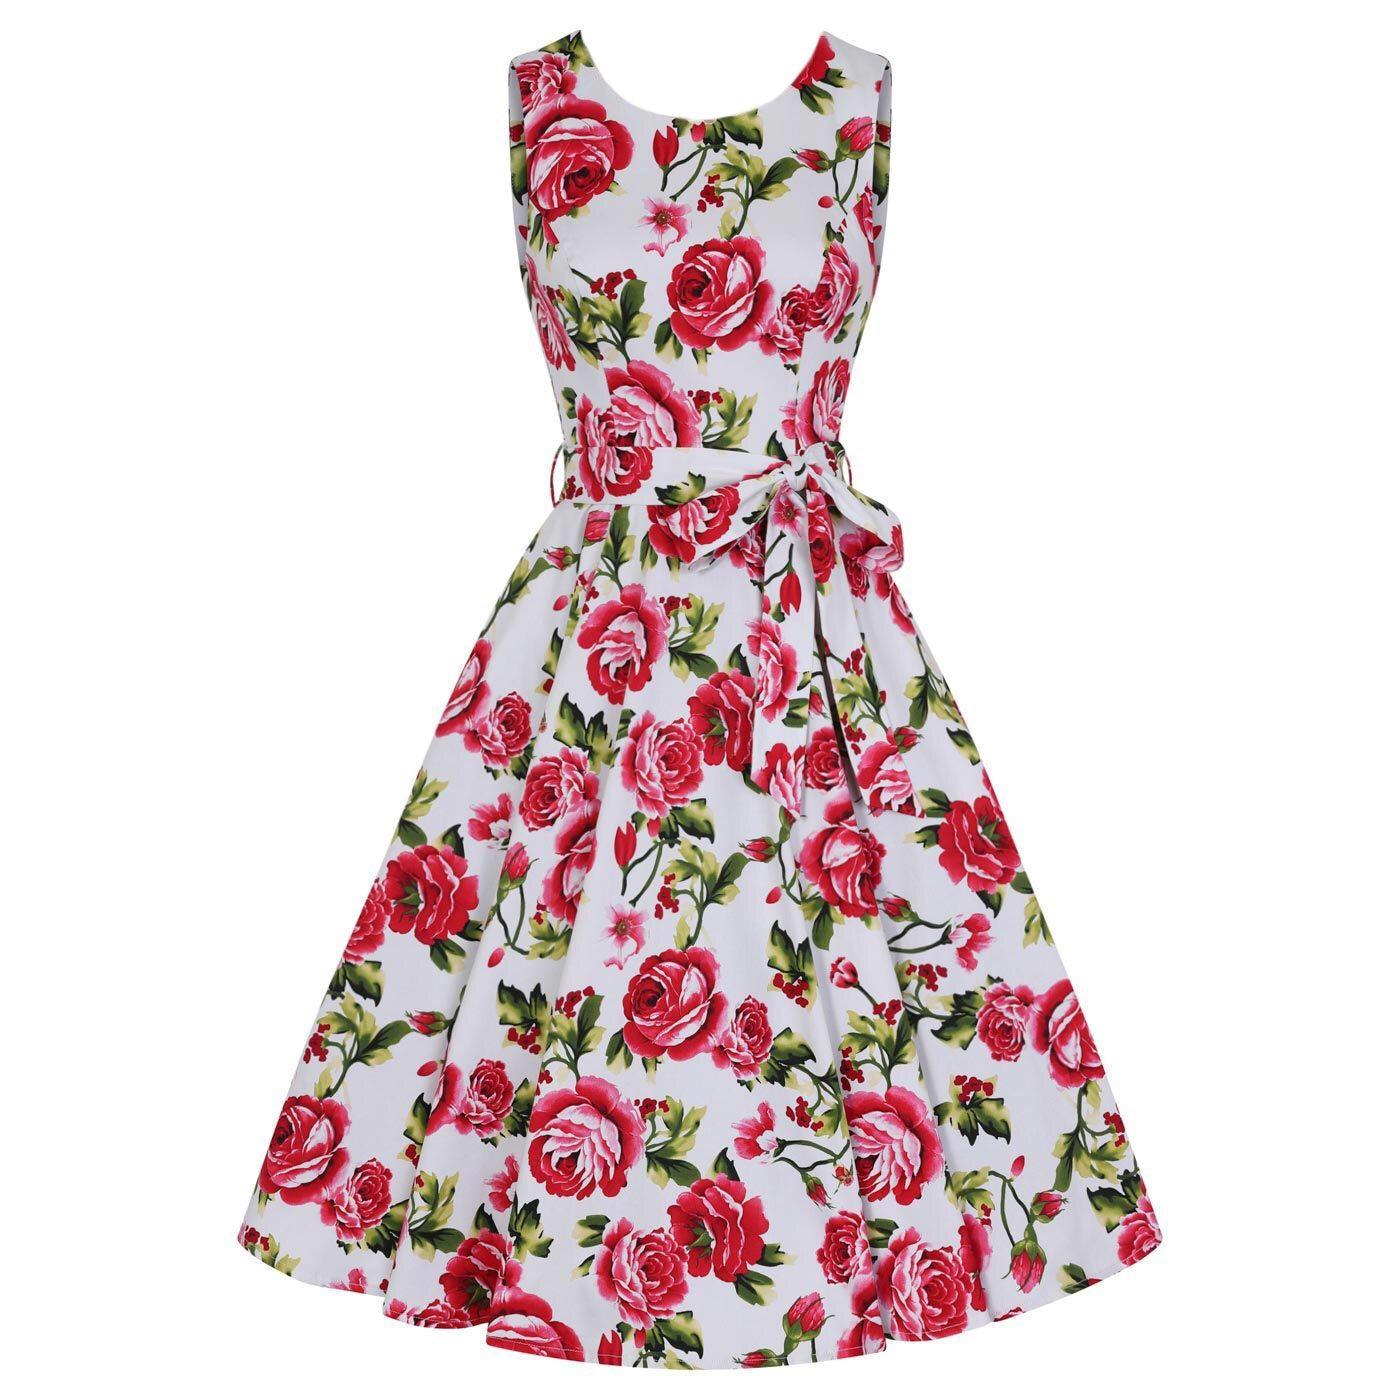 80cdea121d2f Vintage Style Dresses & Clothing Boutique | Pretty Kitty Fashion